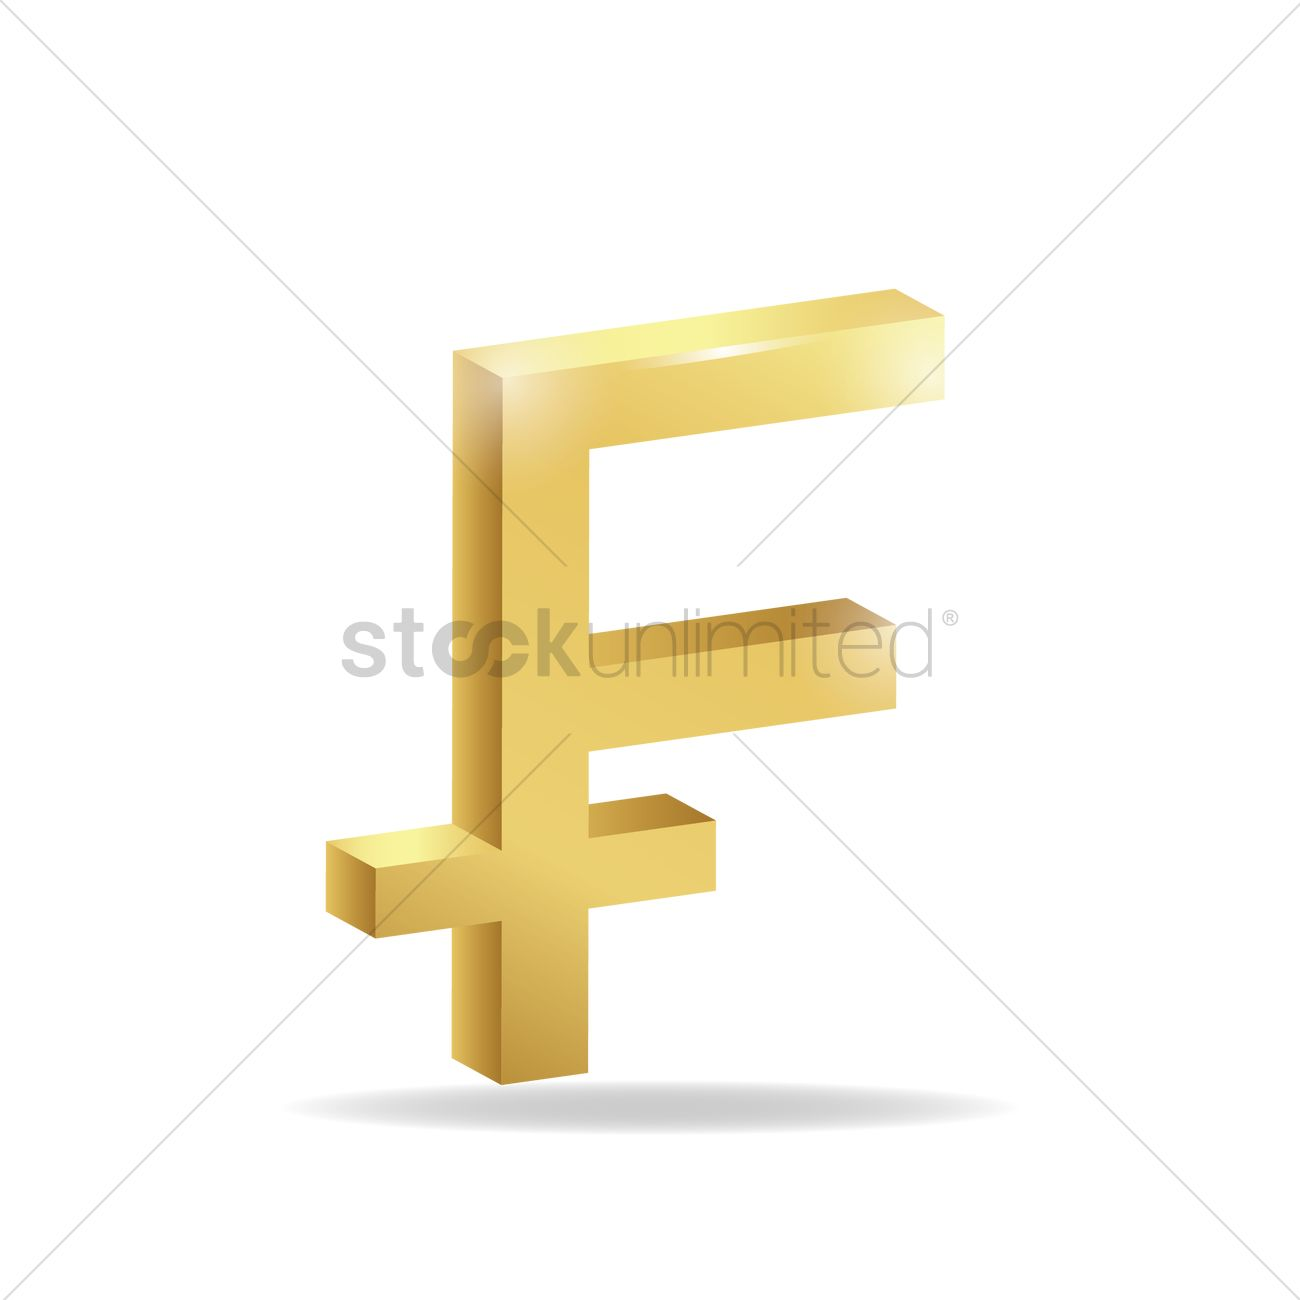 3d Franc Currency Symbol Vector Image 1827788 Stockunlimited